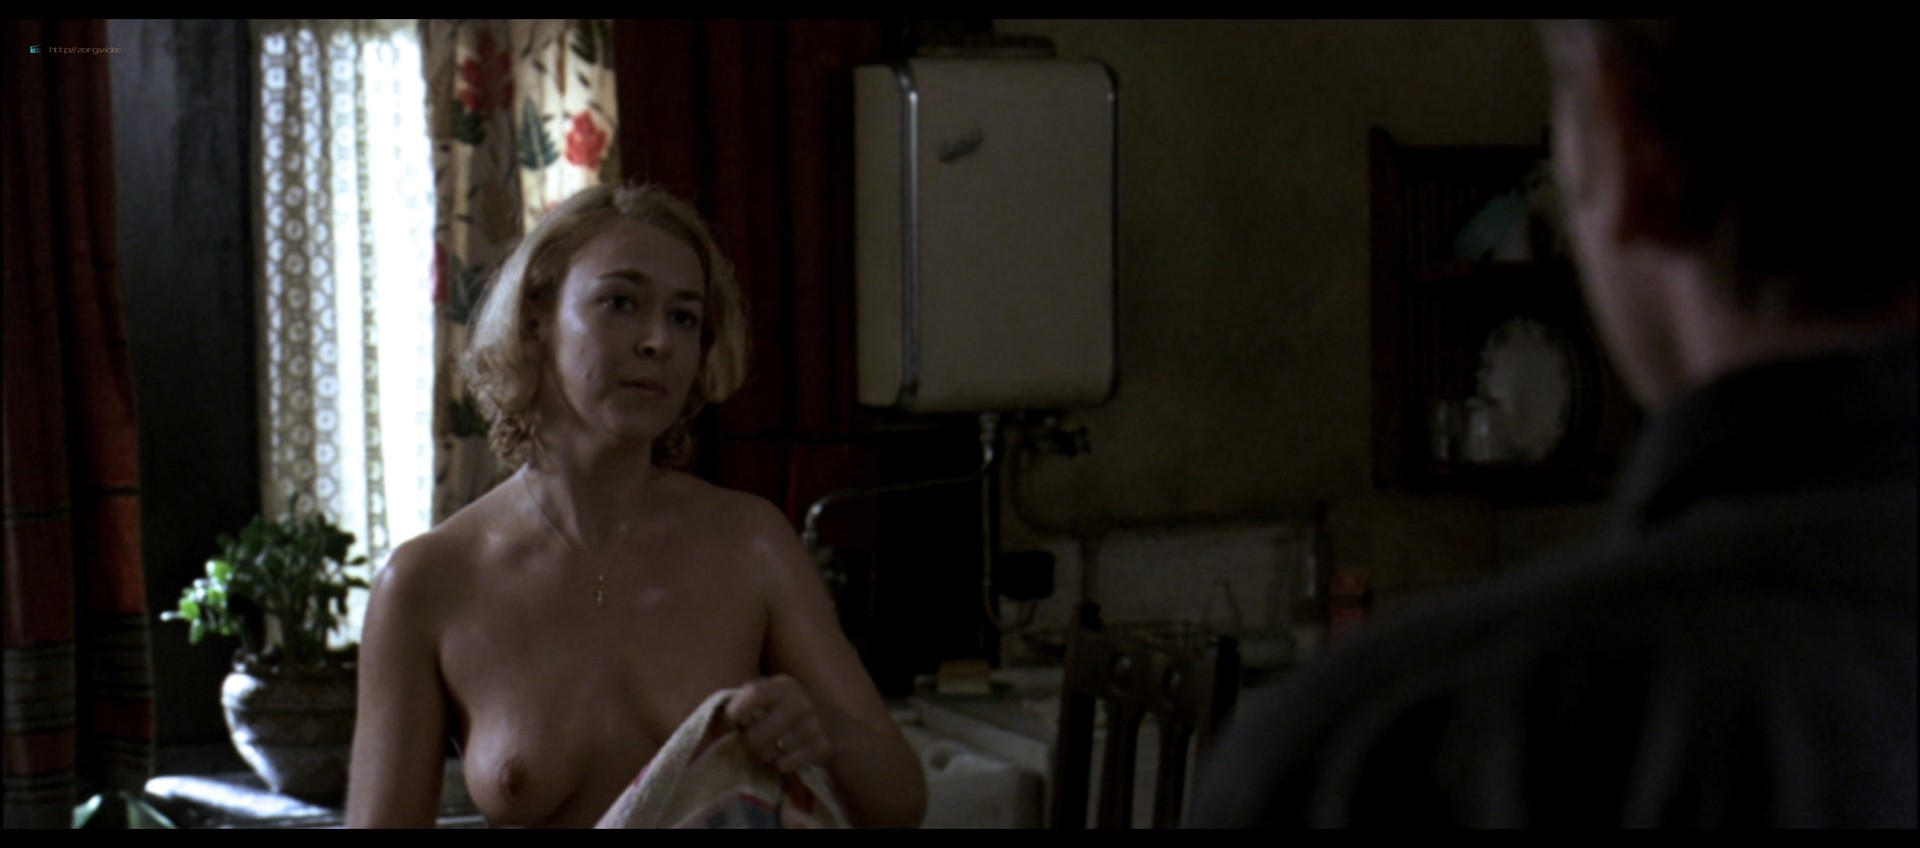 Emily Mortimer nude Tilda Swinton and Pauline Turner nude full frontal - Young Adam (2003) HD 1080p BluRay (2)